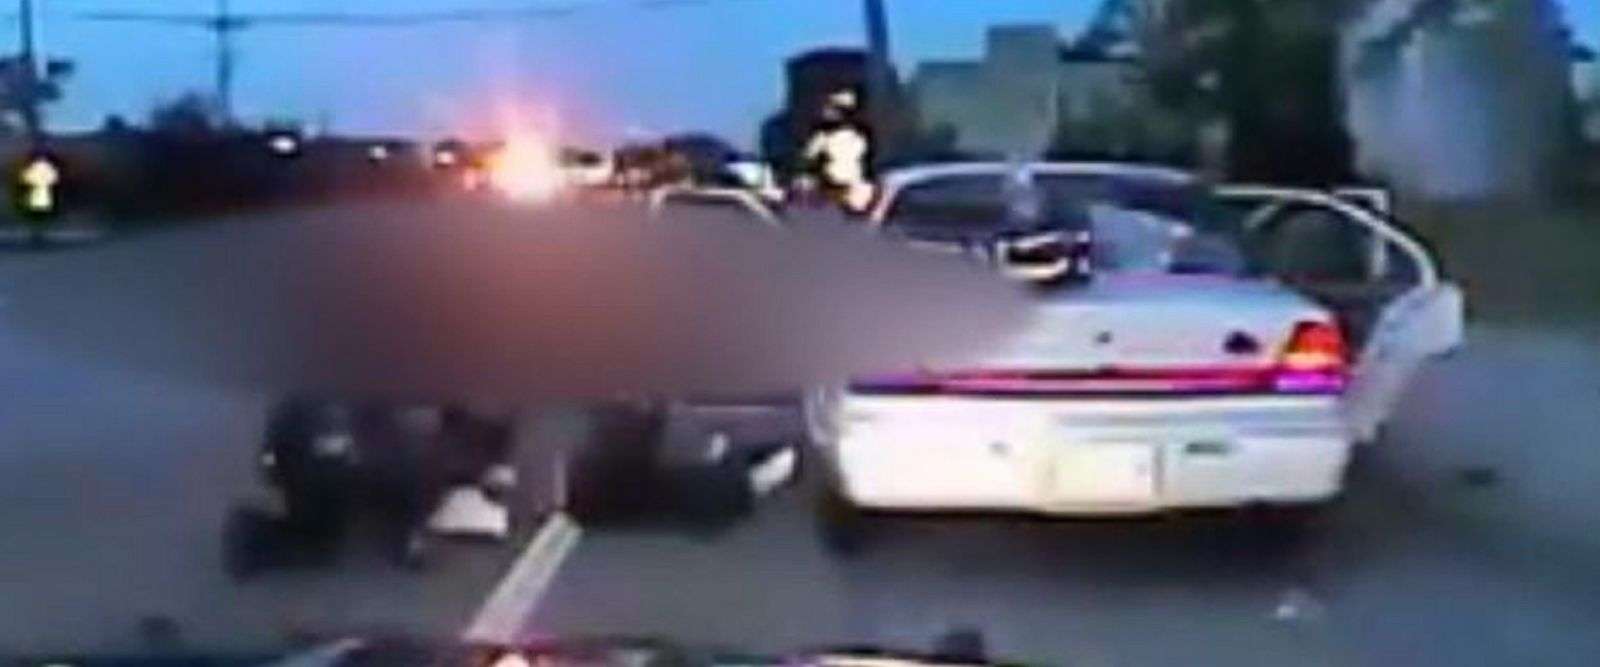 VIDEO: Philandro Castile death: Police dashcam video released